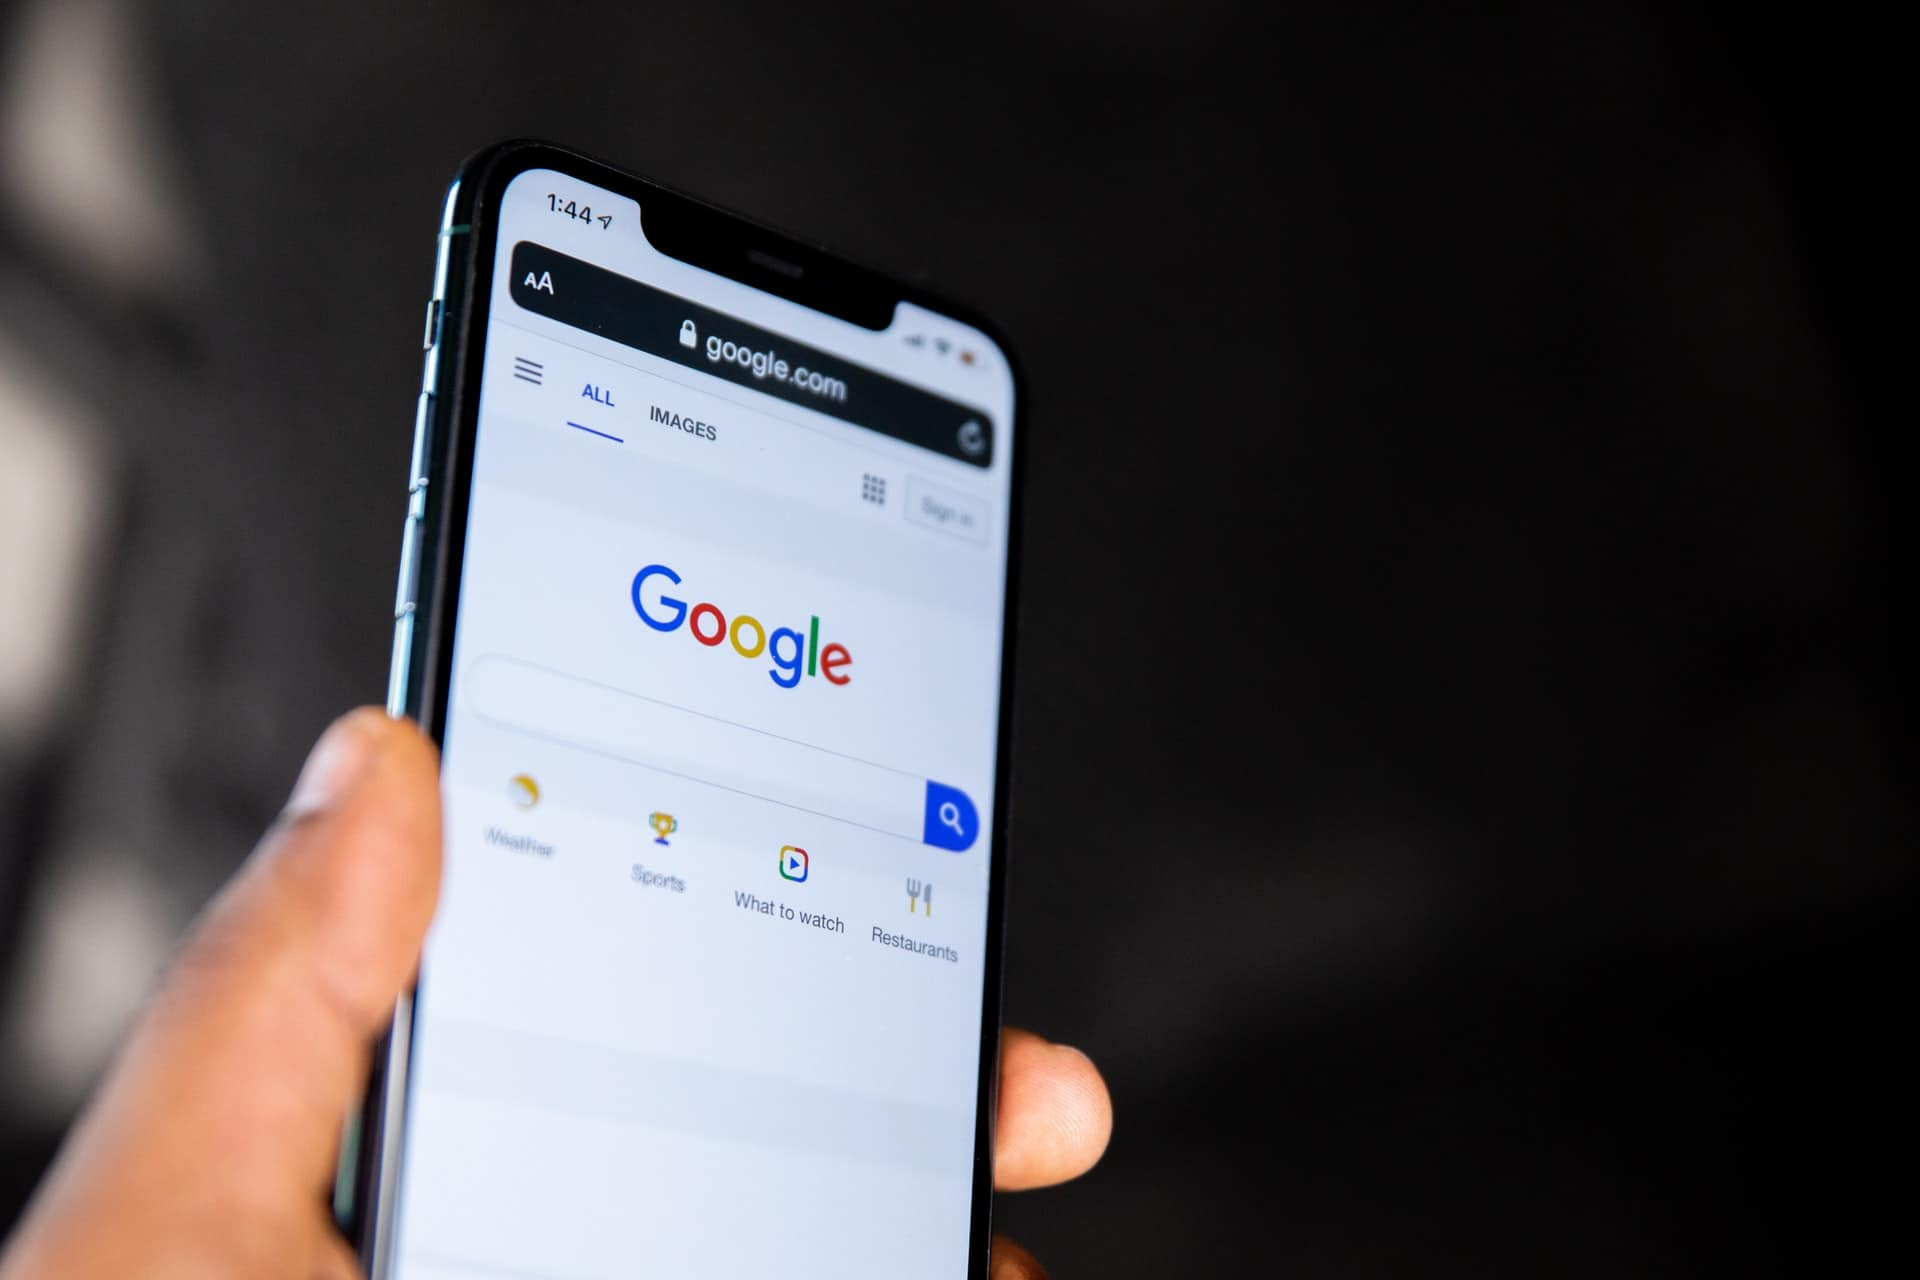 Google search page on phone